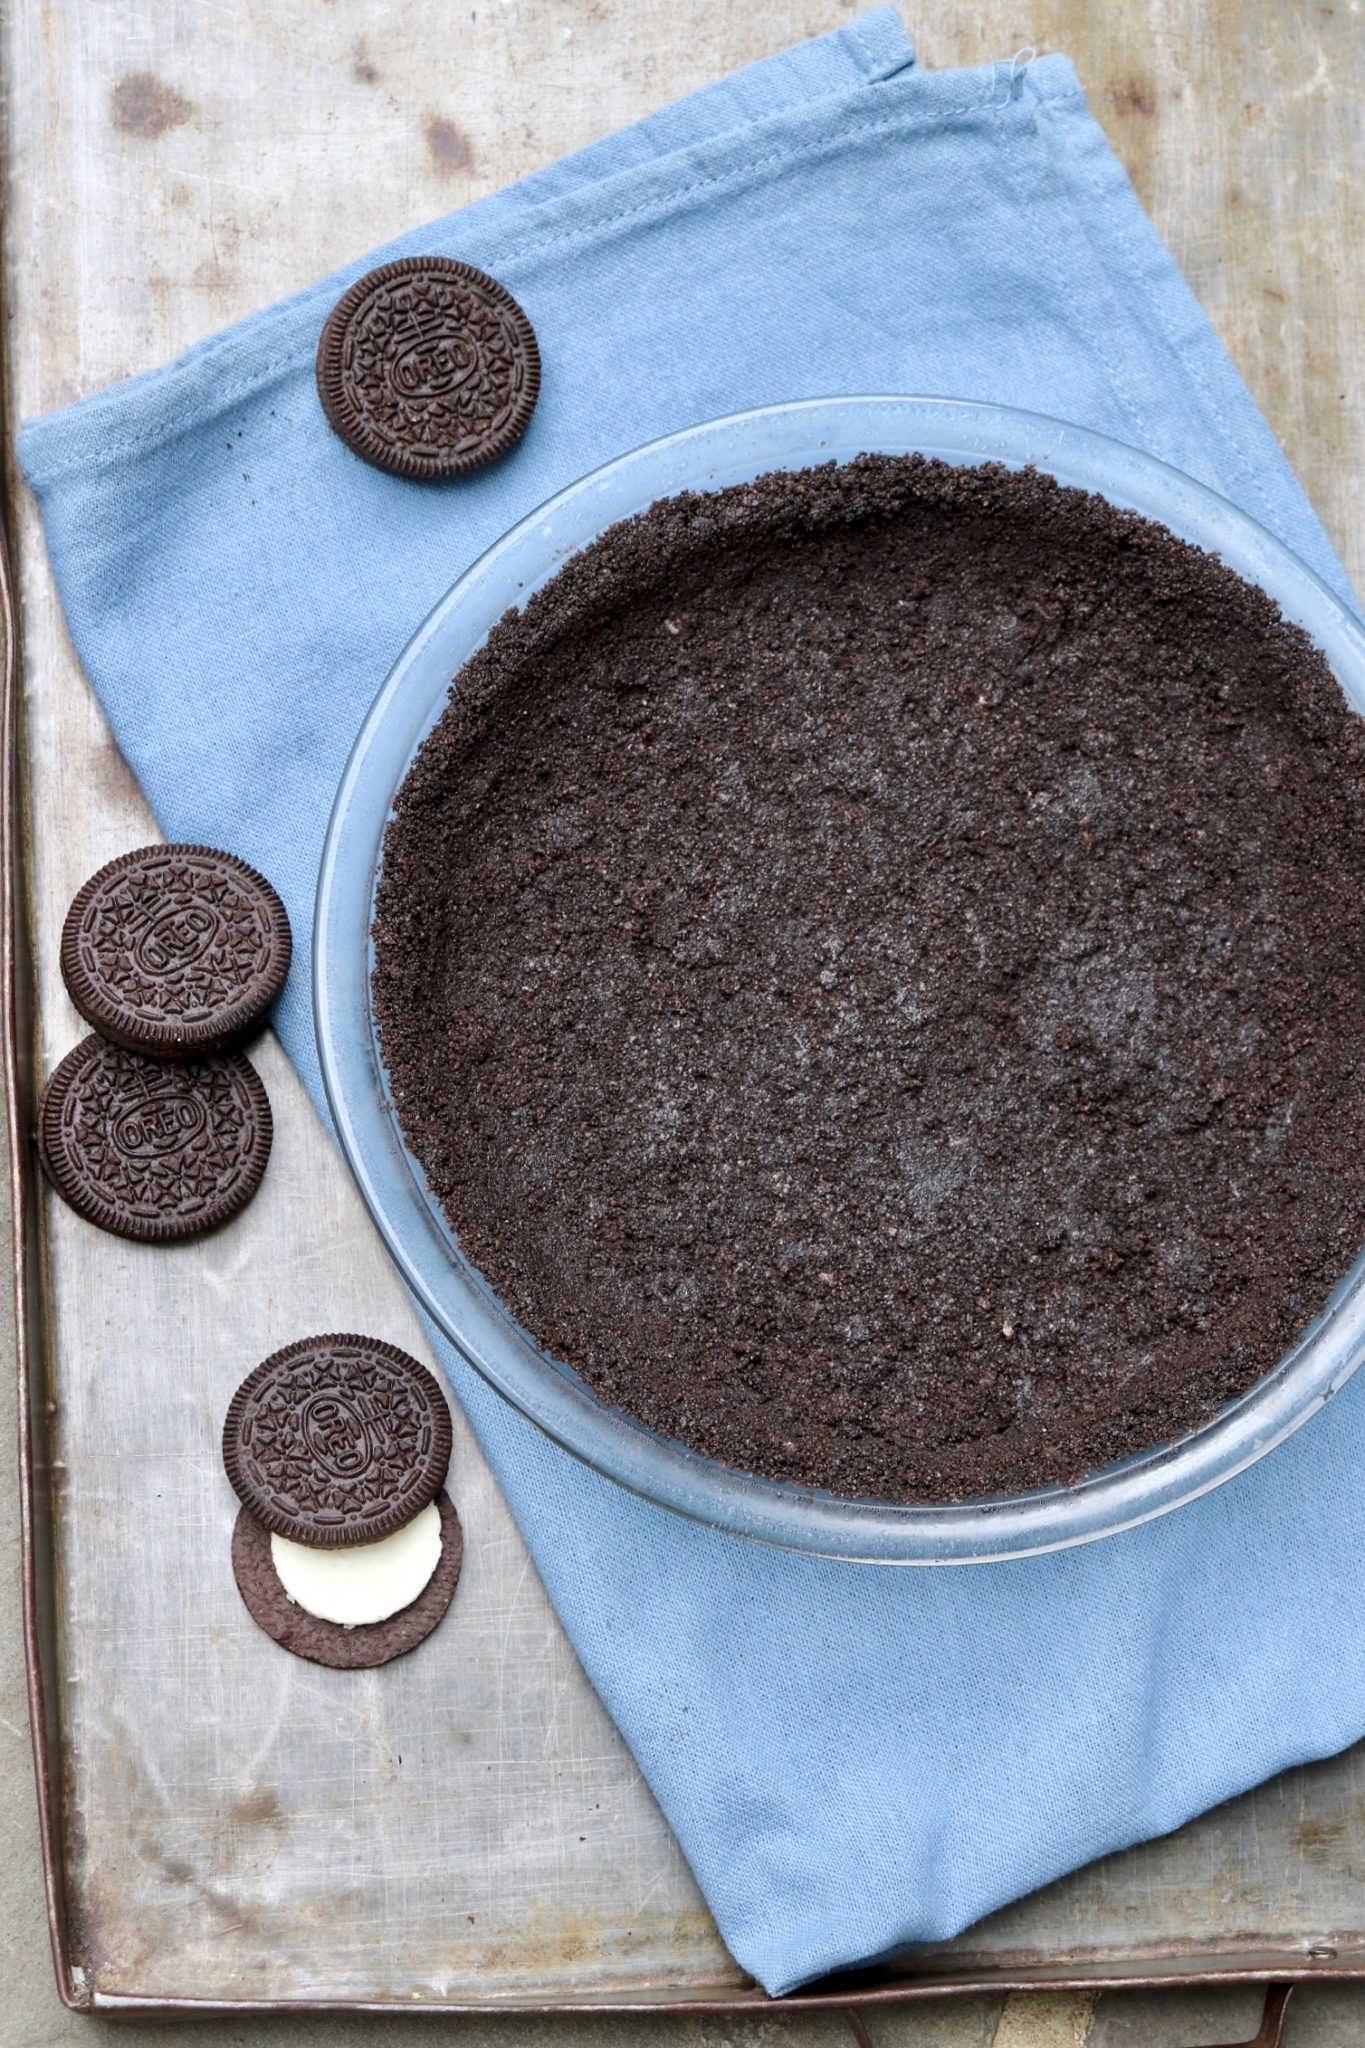 Easy Mud Pie-Atrue winner! The quick homemade crust adds something special (and allows for a gluten-free option) but a store-bought cookie crust works well, too